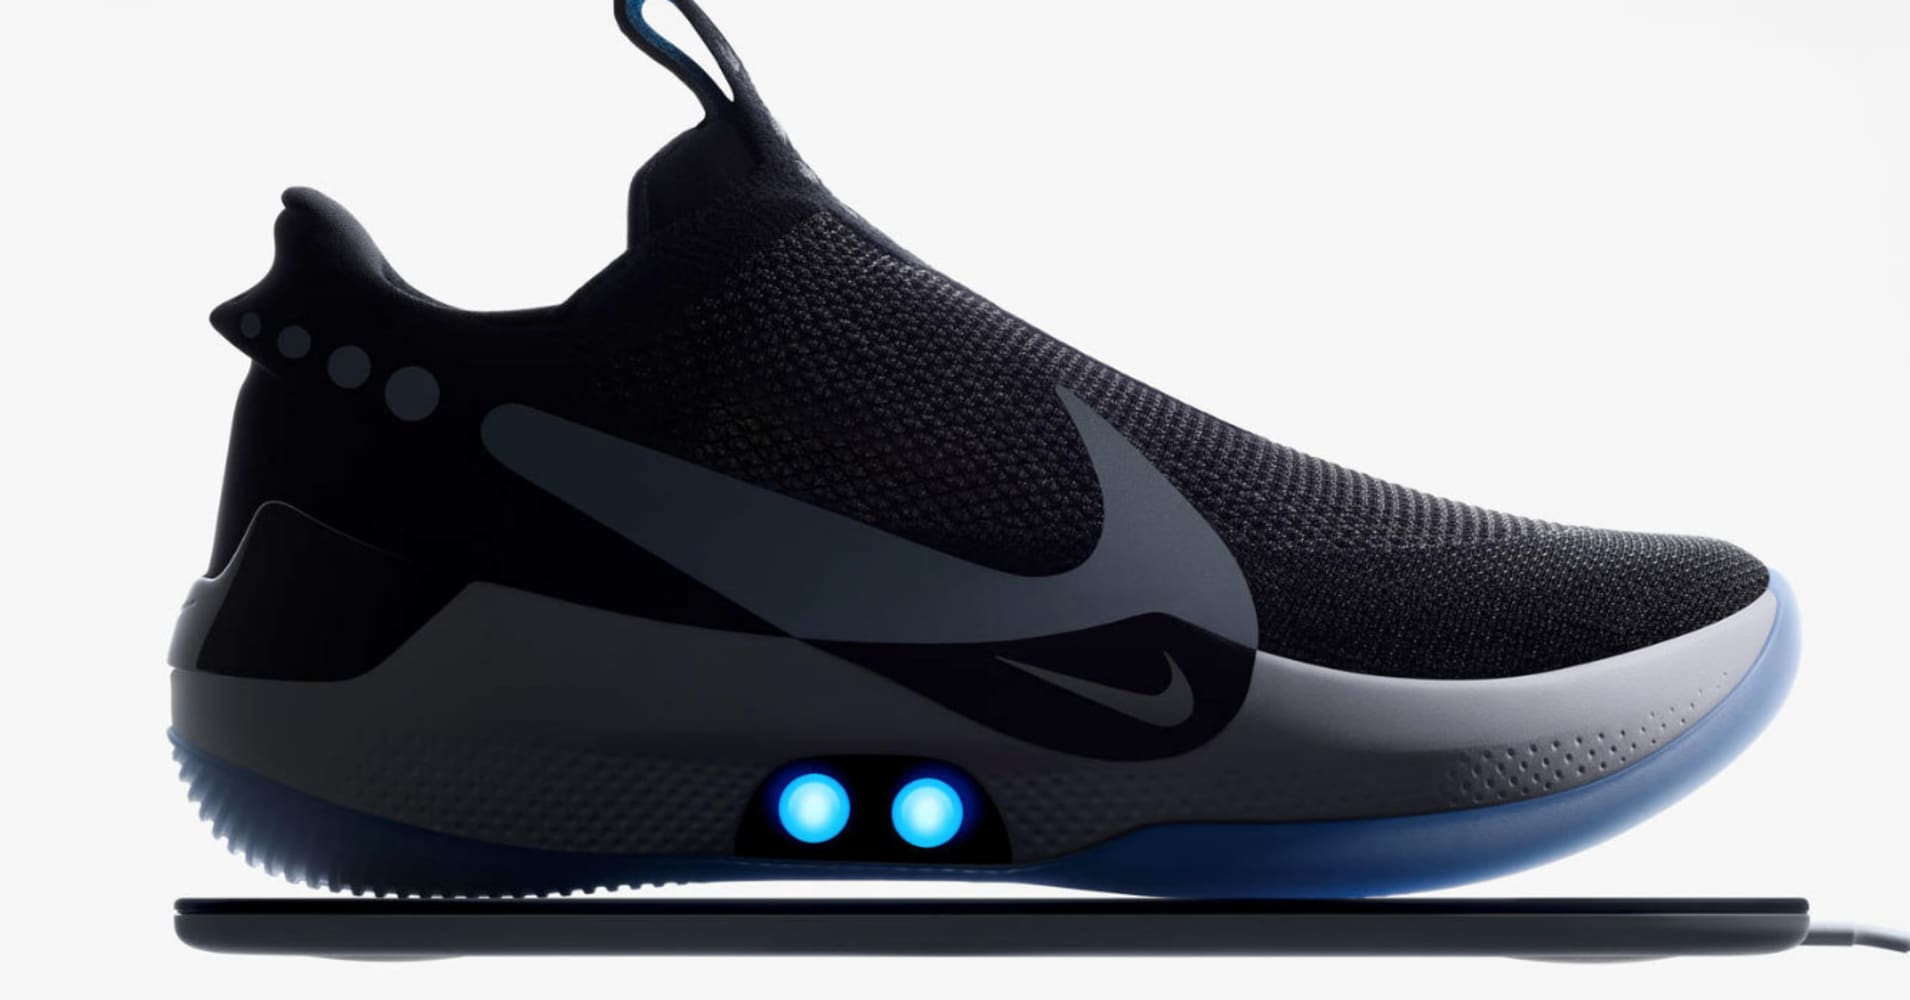 You can lace Nike's Adapt BB shoes with a smartphone app